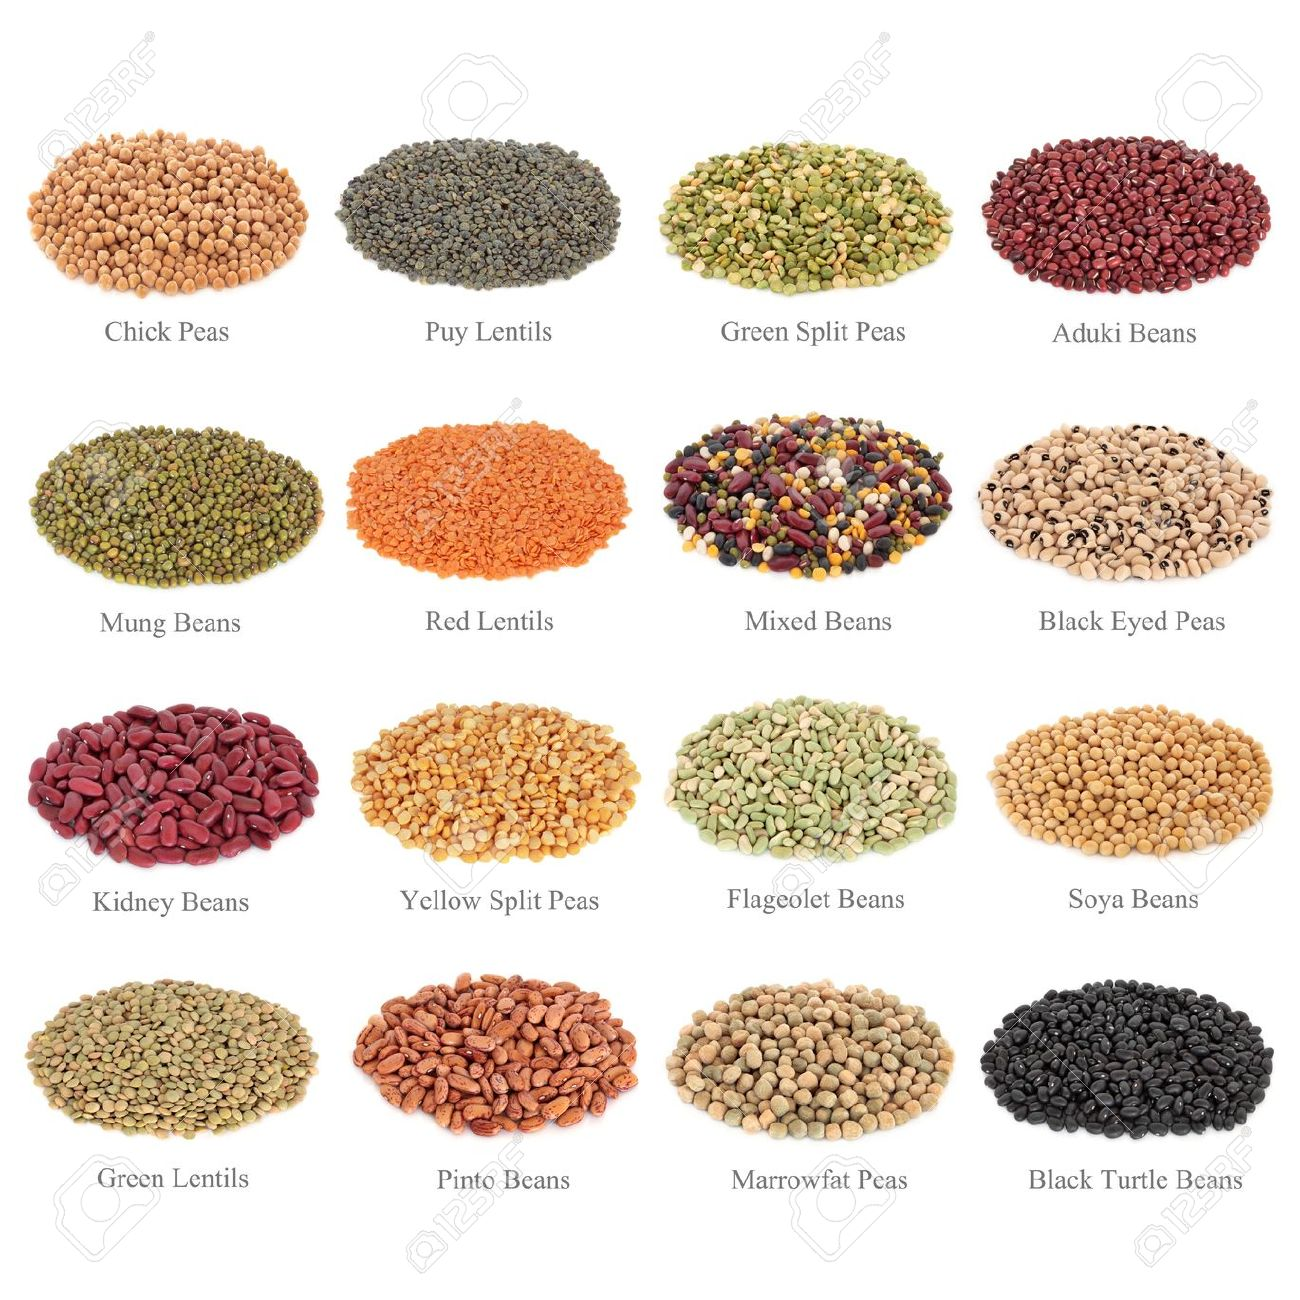 Pulses names in english and telugu with pictures